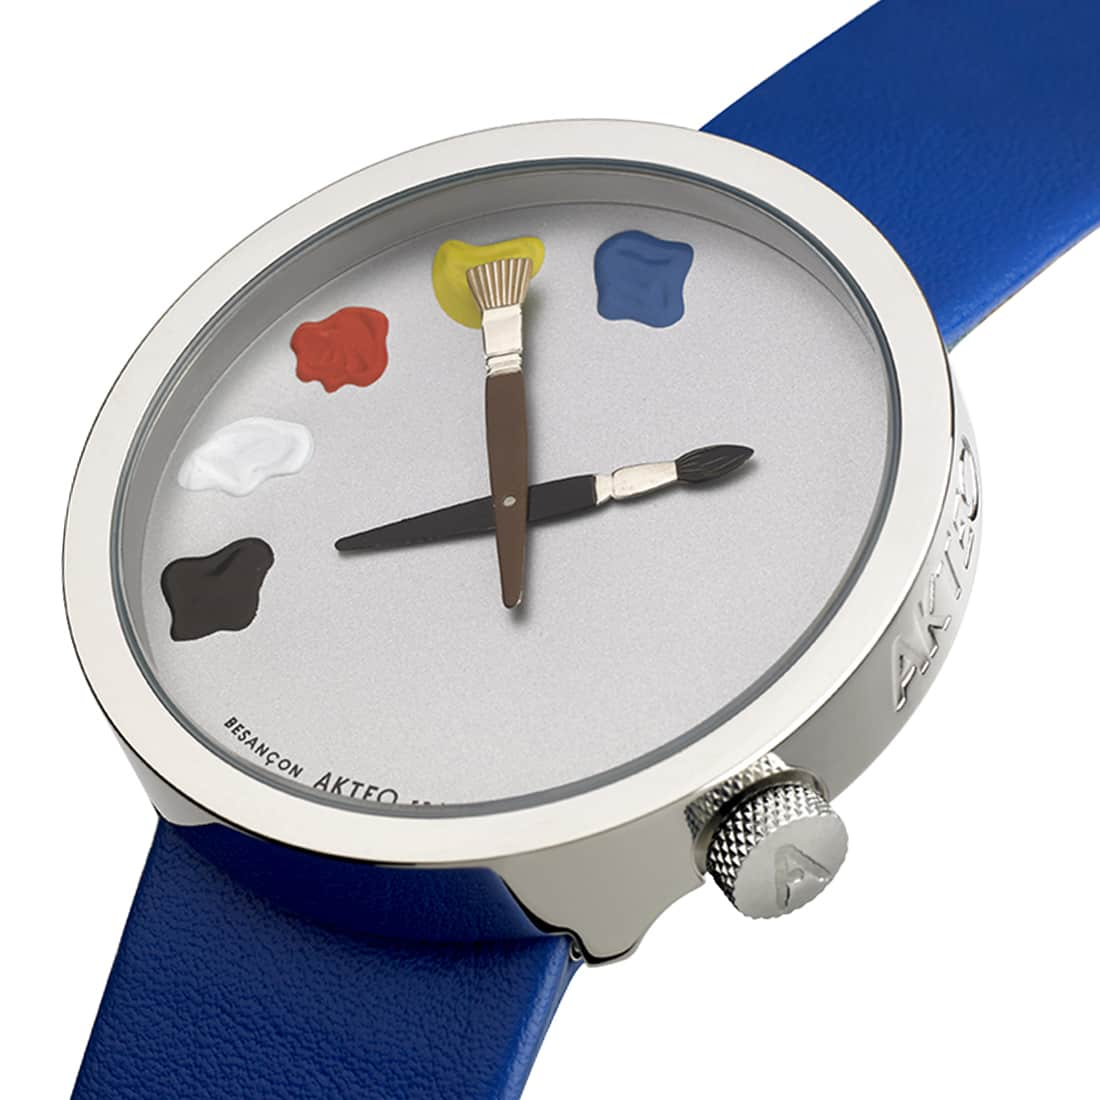 Photo de Montre Akteo Art Peinture 01 48 cm